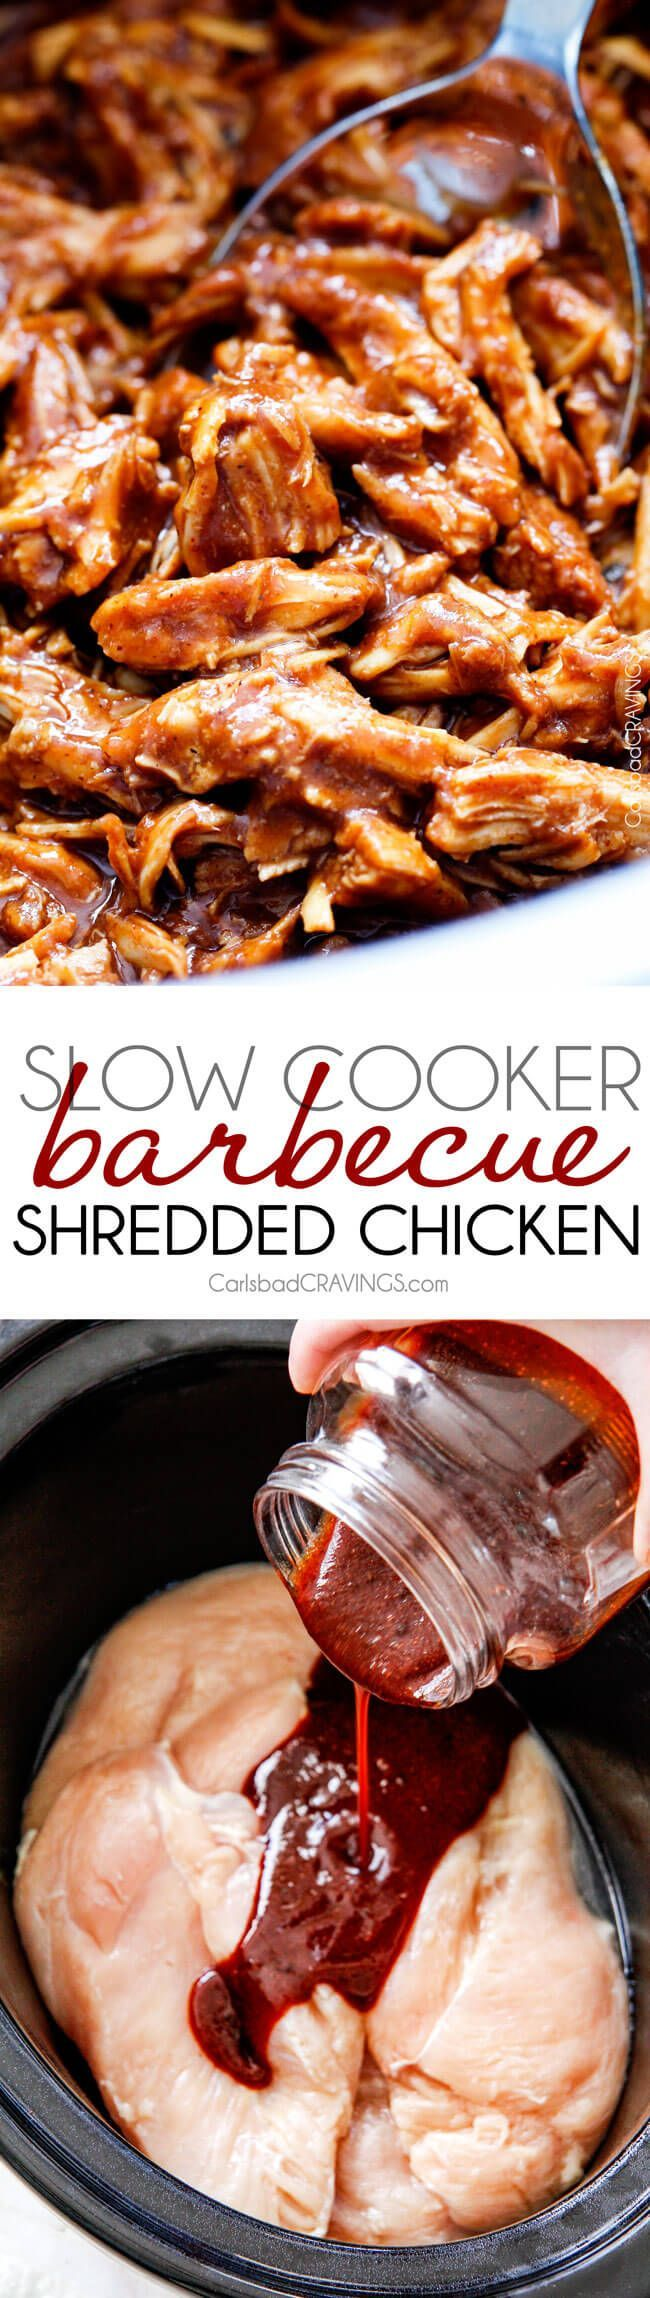 how to make barbecue chicken in a crock pot